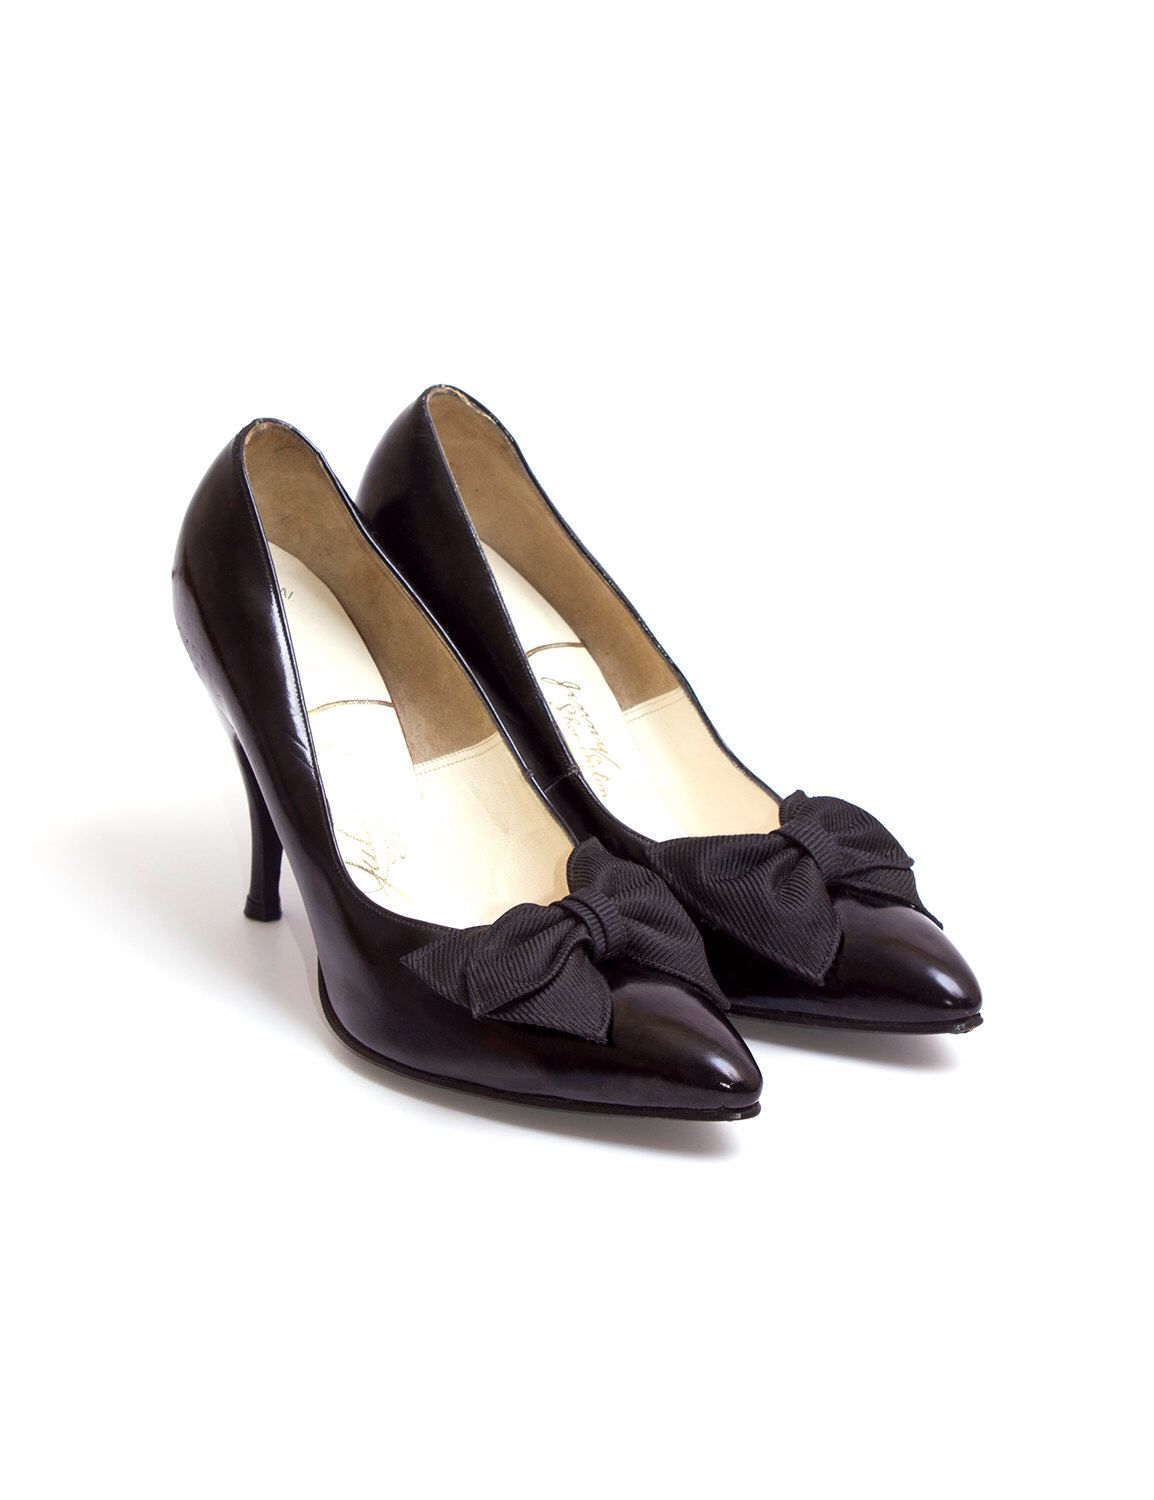 1950s Vintage Black Patent Leather Designer Pumps, Midcentury 50s Black Bows Stiletto Fashion Noir Heels by Julianelli 6B